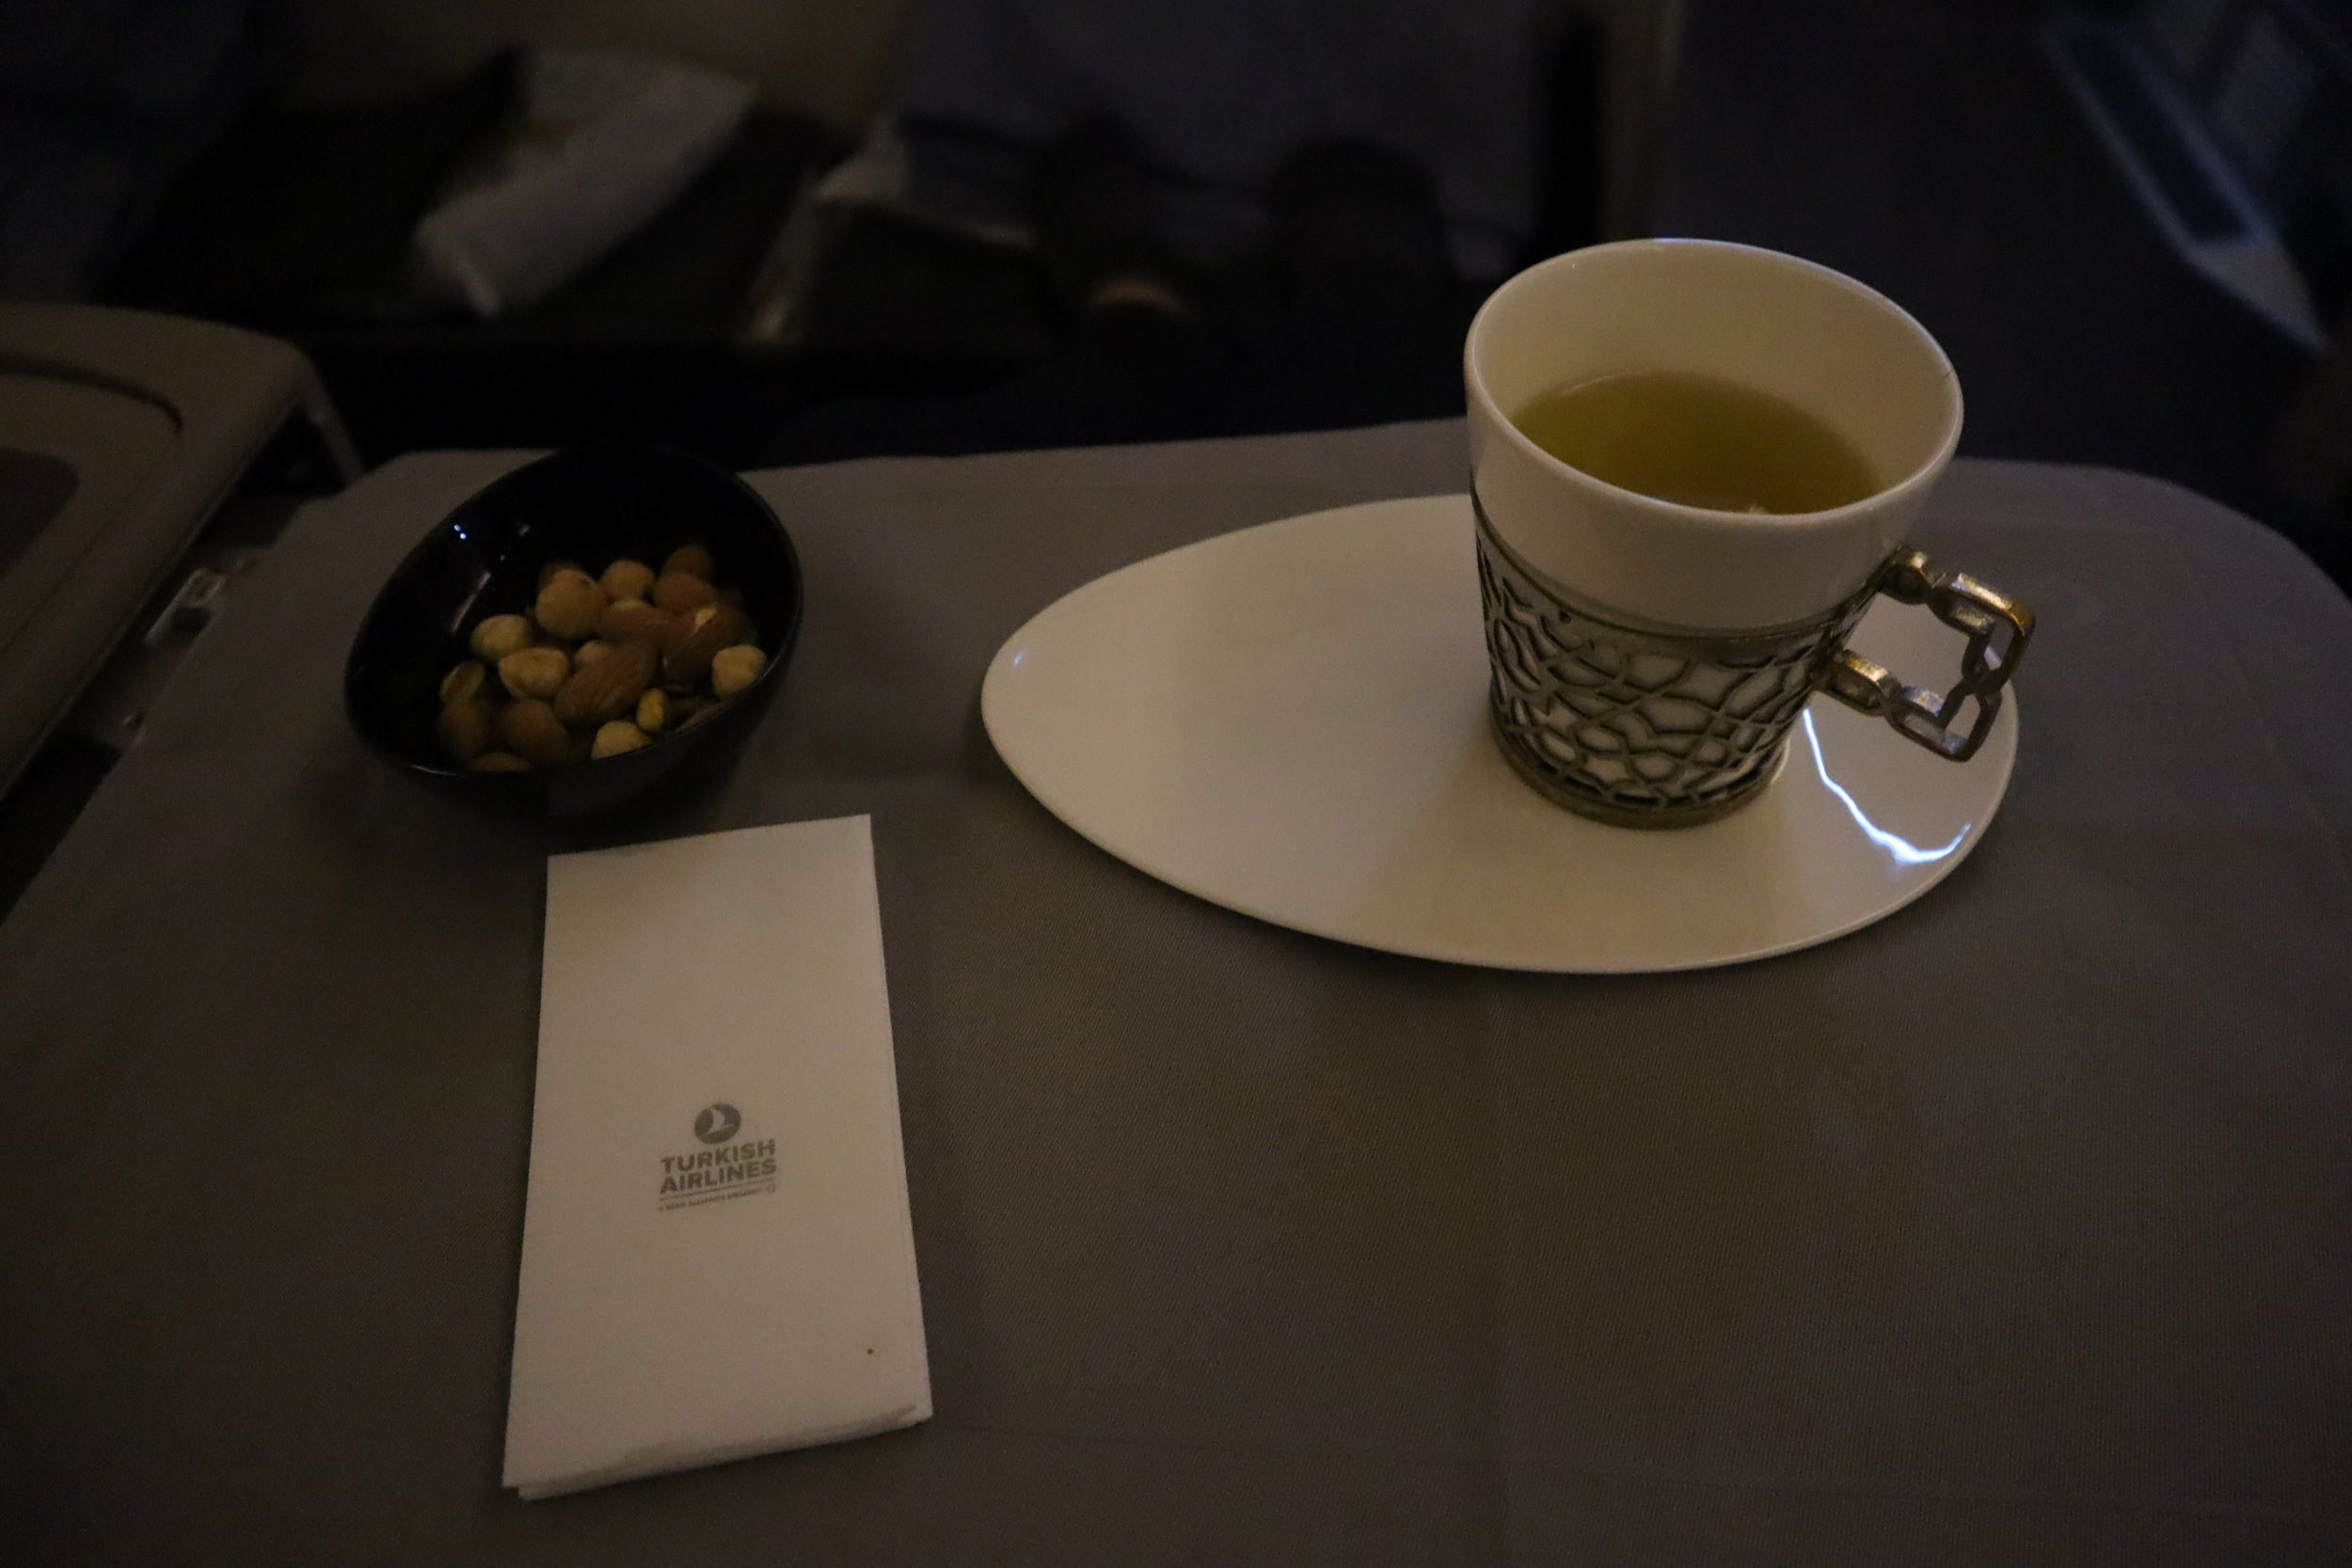 Turkish Airlines 777 business class – Mixed nuts and green tea